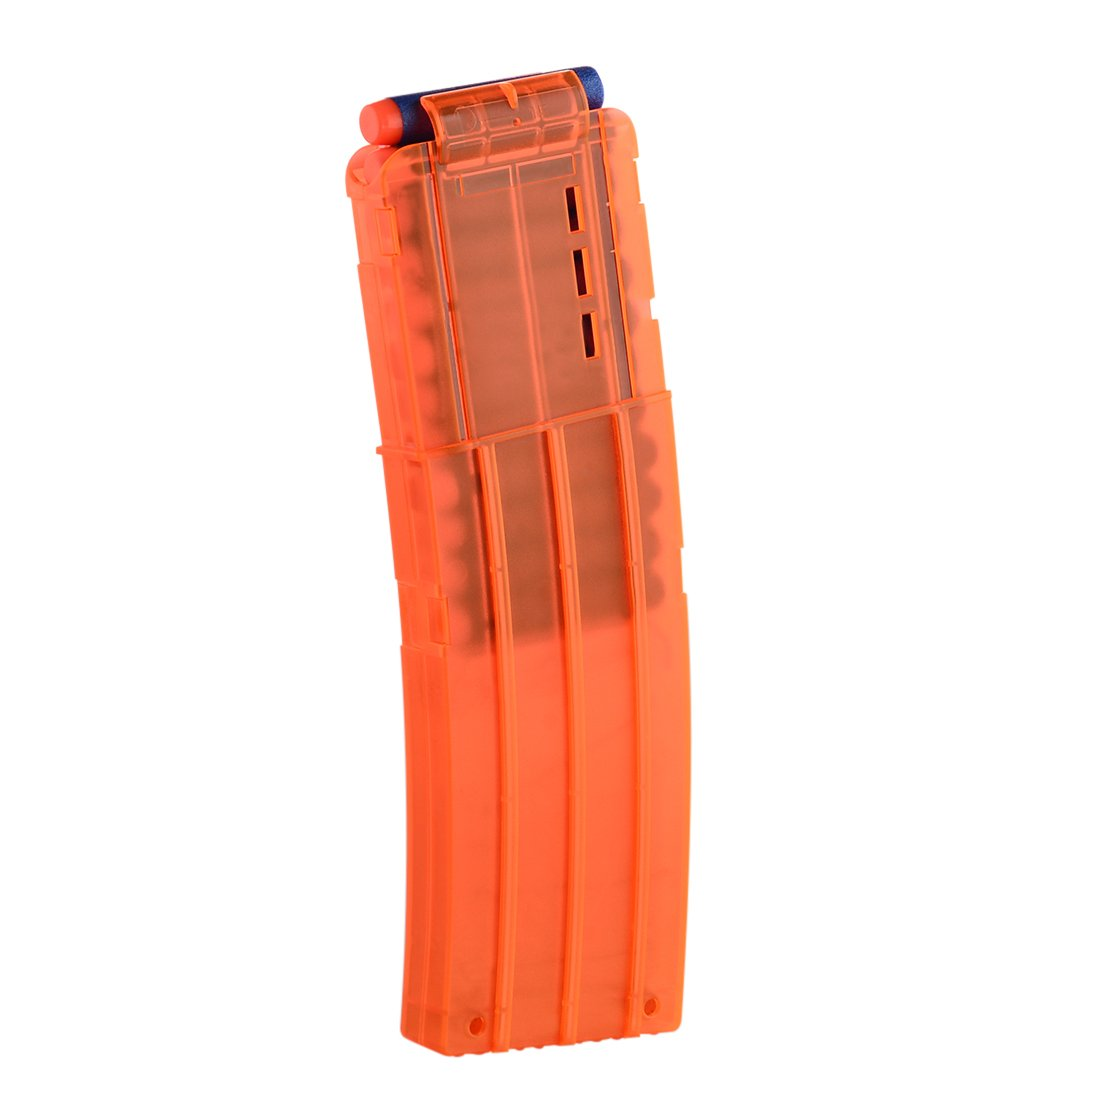 Soft Bullet Magazin f/ür Nerf-N Strike Elite Blaster Kinderpistolen-Munitionspatronen-Dart-Gun-Clips von Libertey Bullet Clip 22-Loaded